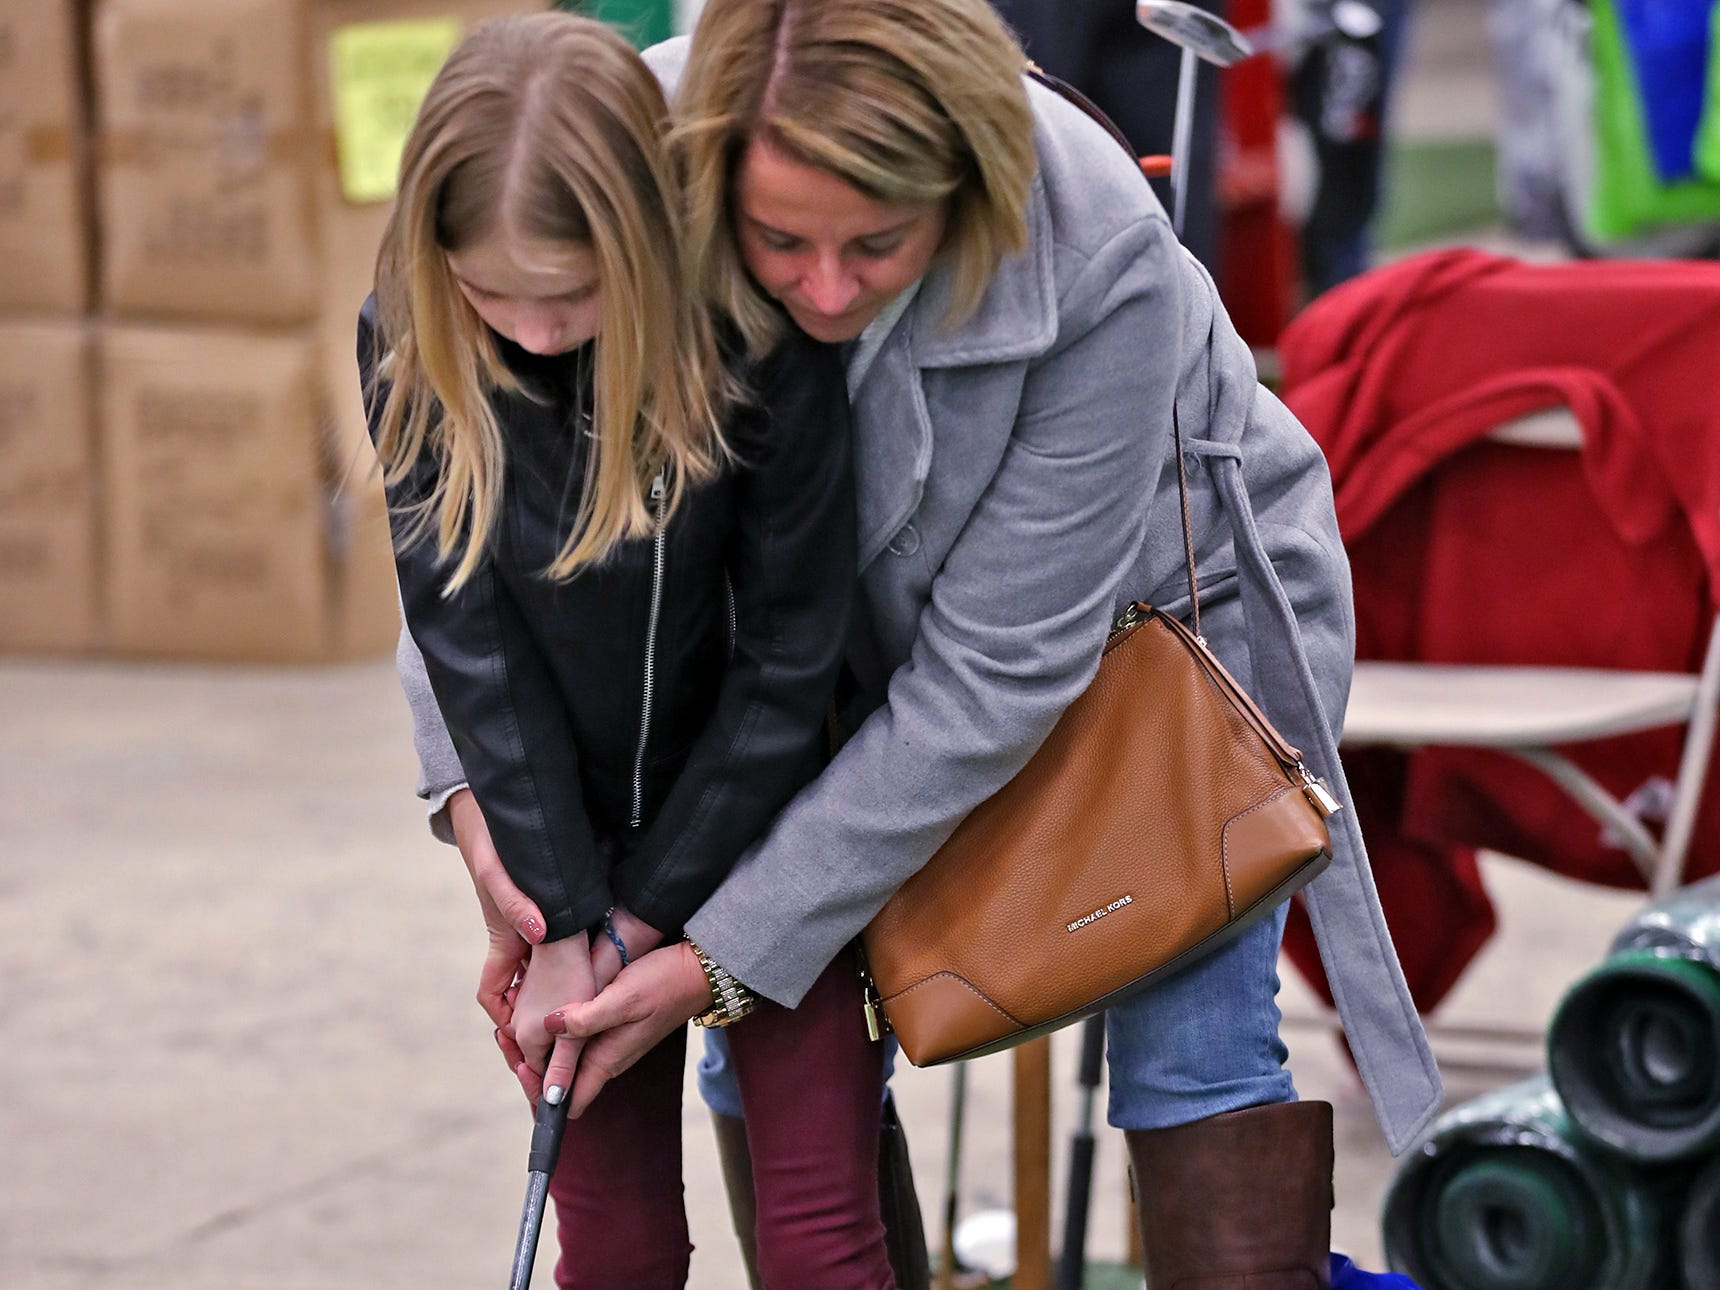 Harley Keller, left, gets help with her putting from Jennifer Carver at the Big Moss Golf booth during the Indy Golf Expo at the Indiana State Fairgrounds, Sunday, Jan. 20, 2019.